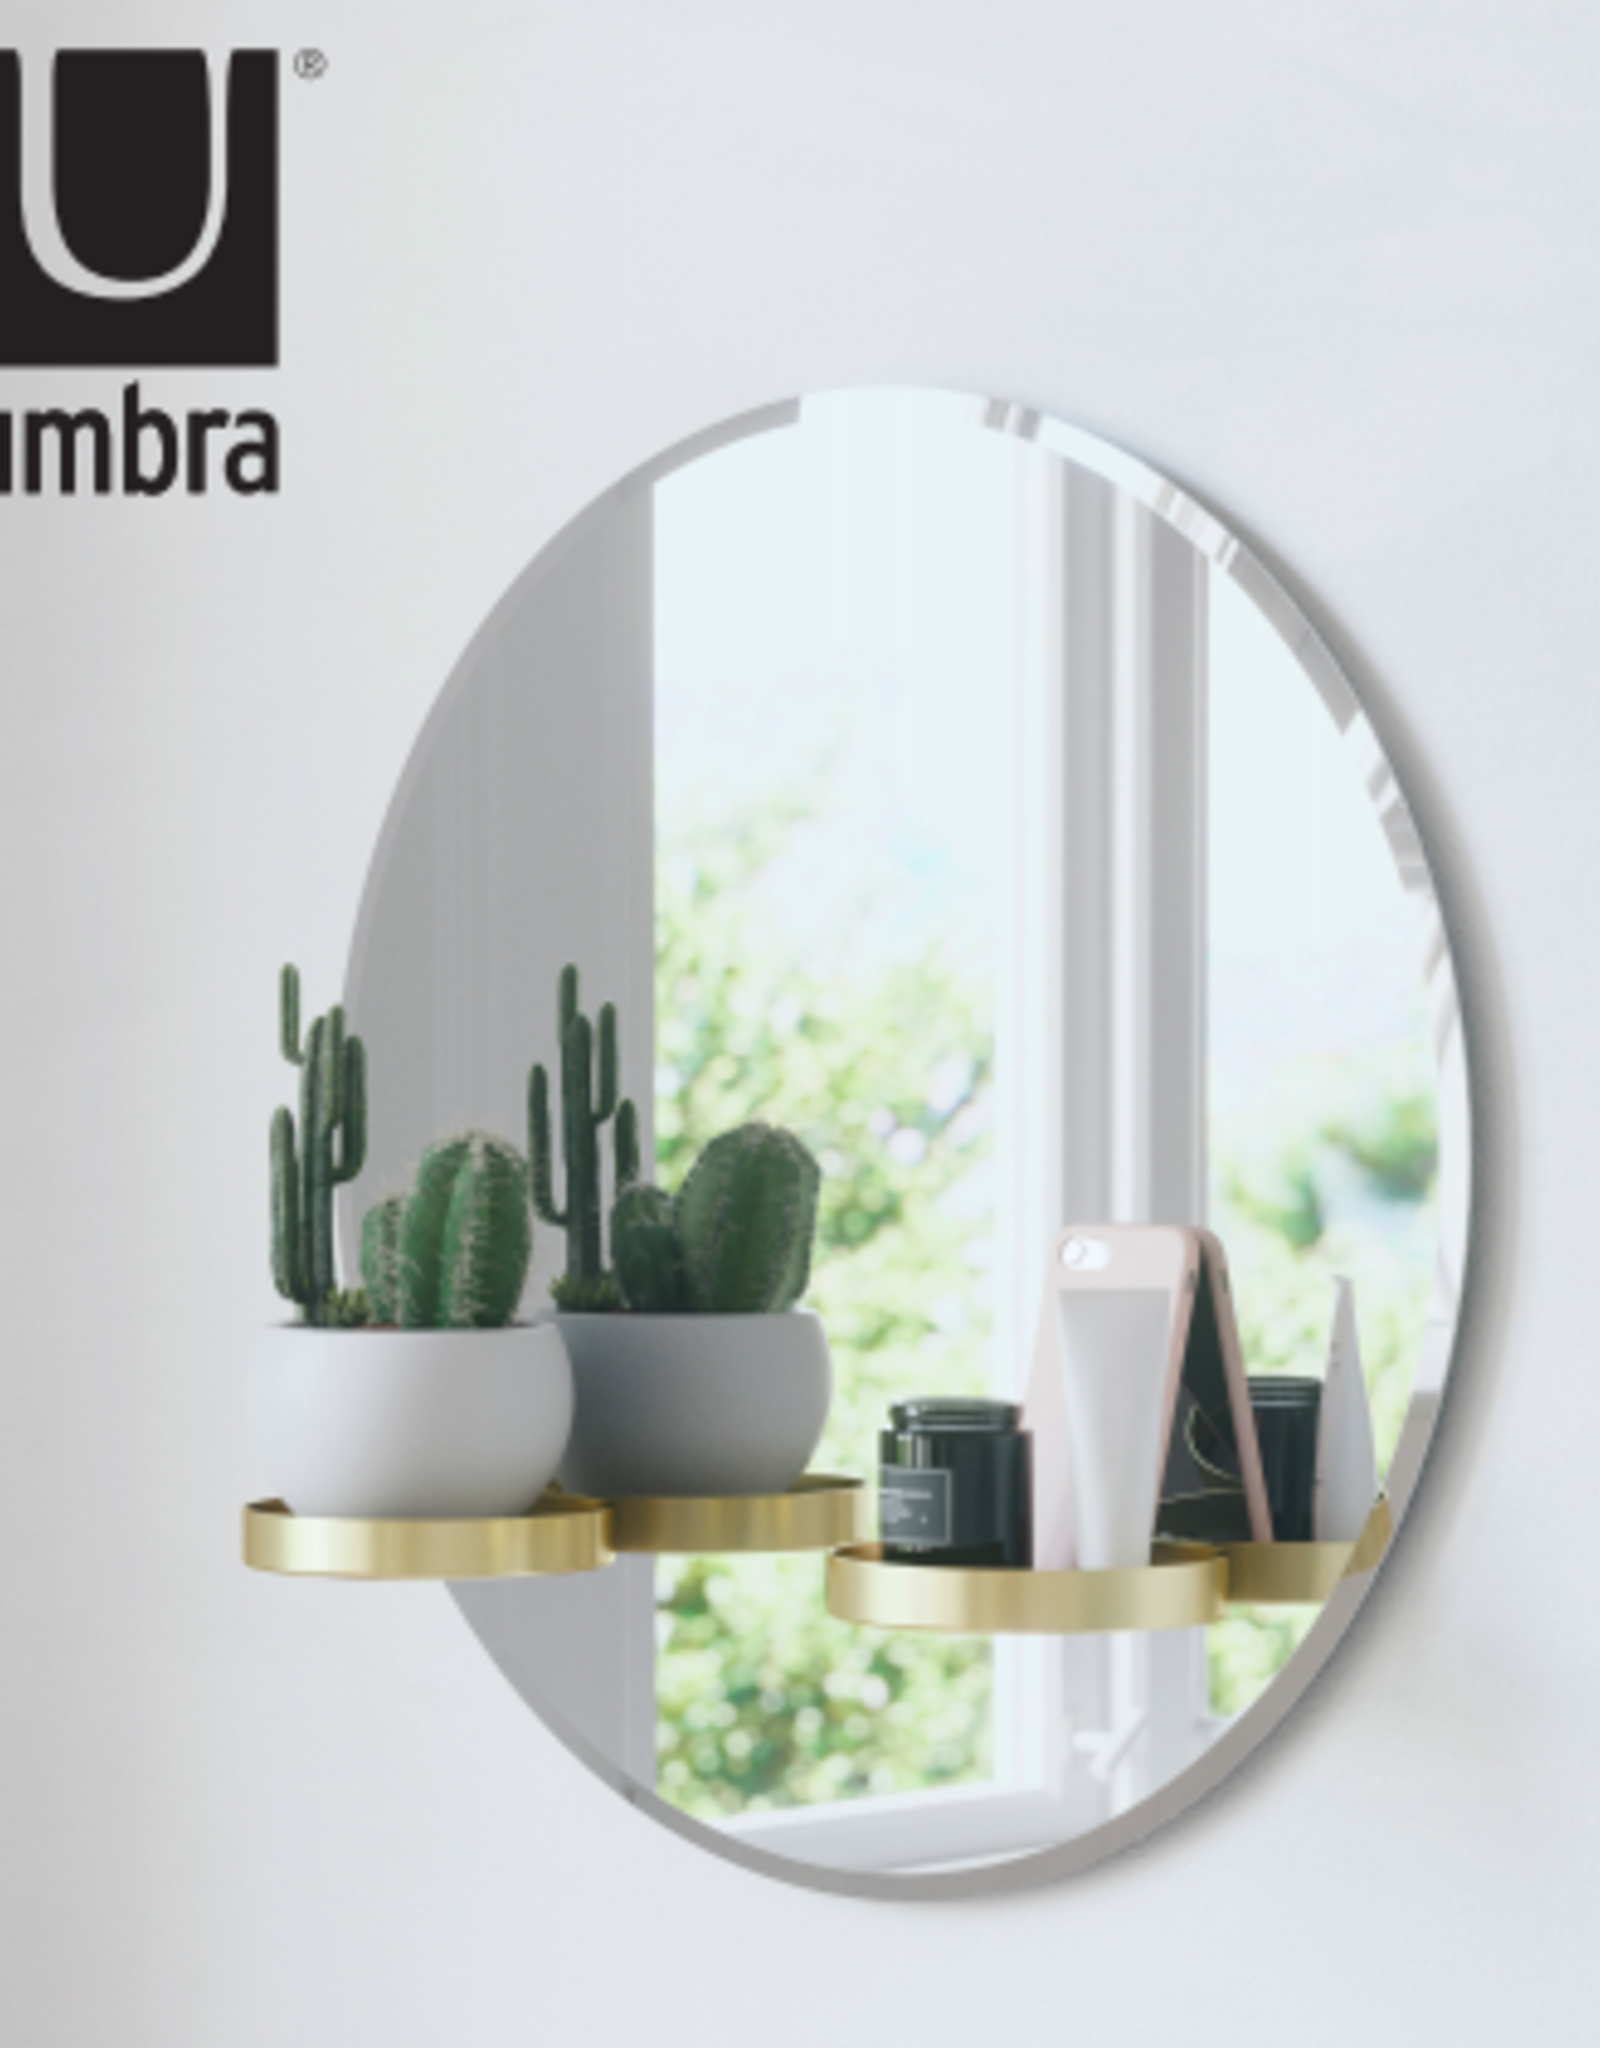 Umbra Perch Mirror Brass 24""